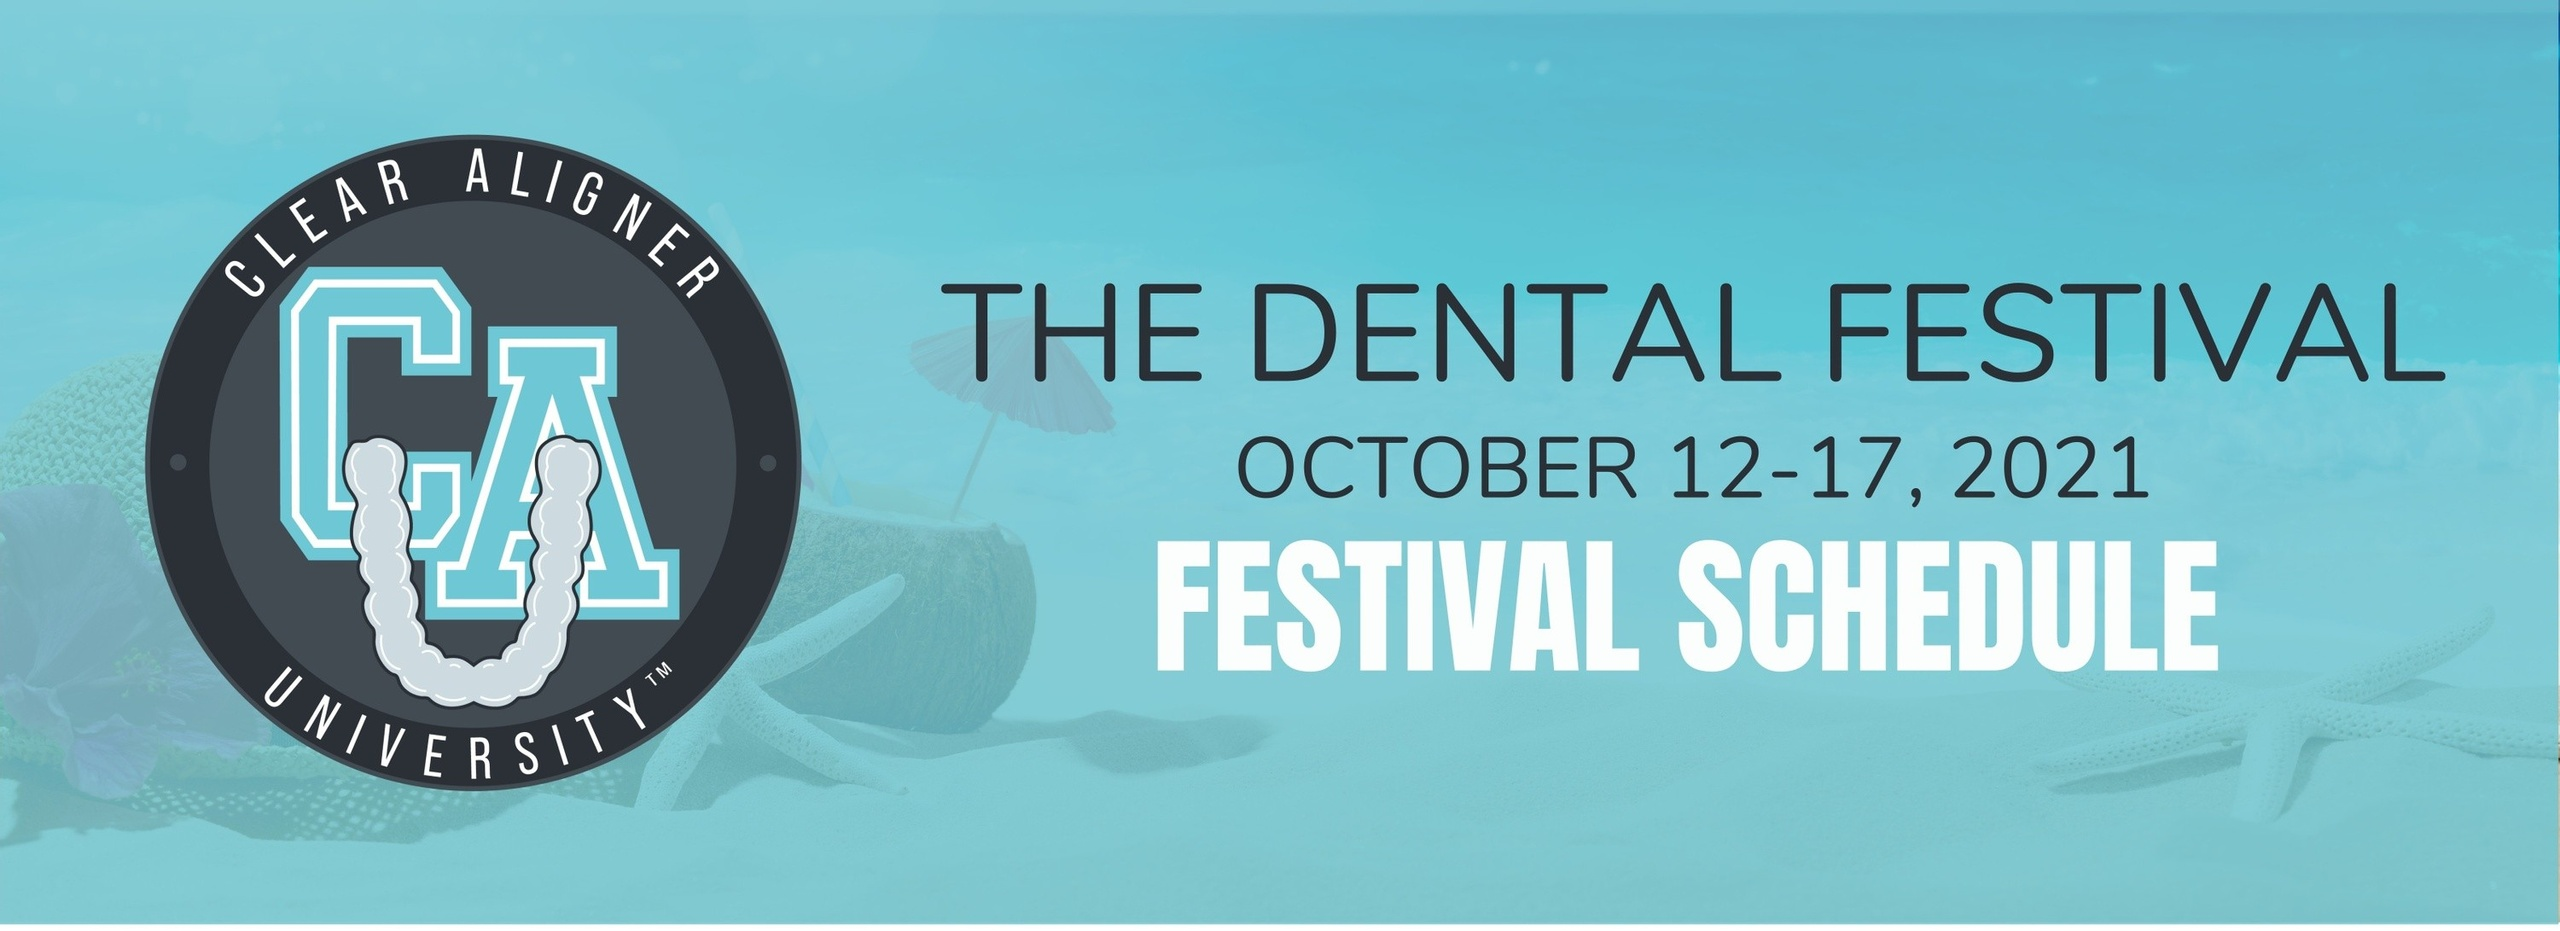 Clear Aligner University at The Dental Festival Schedule